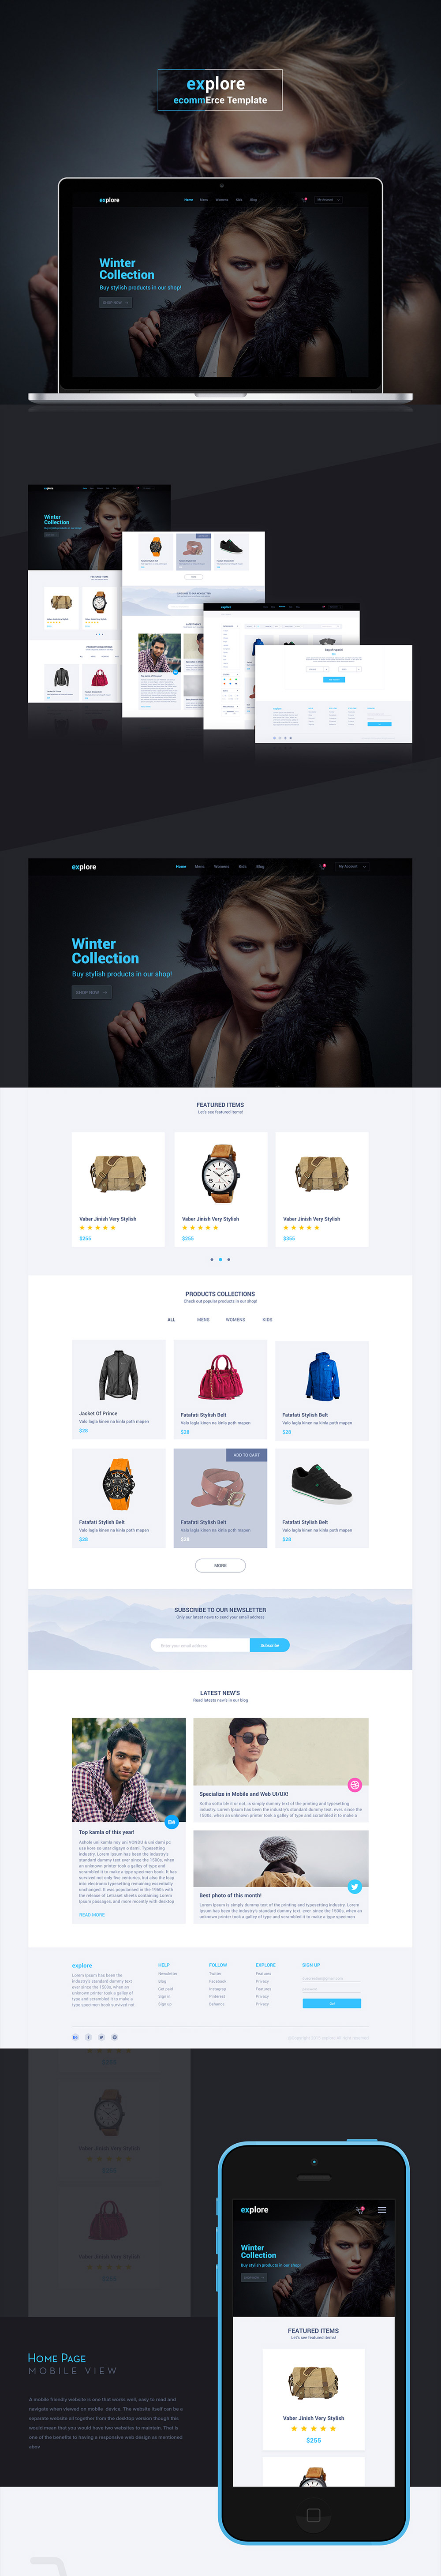 Cool Simple Ecommerce Website Templates Free Psd Set Download